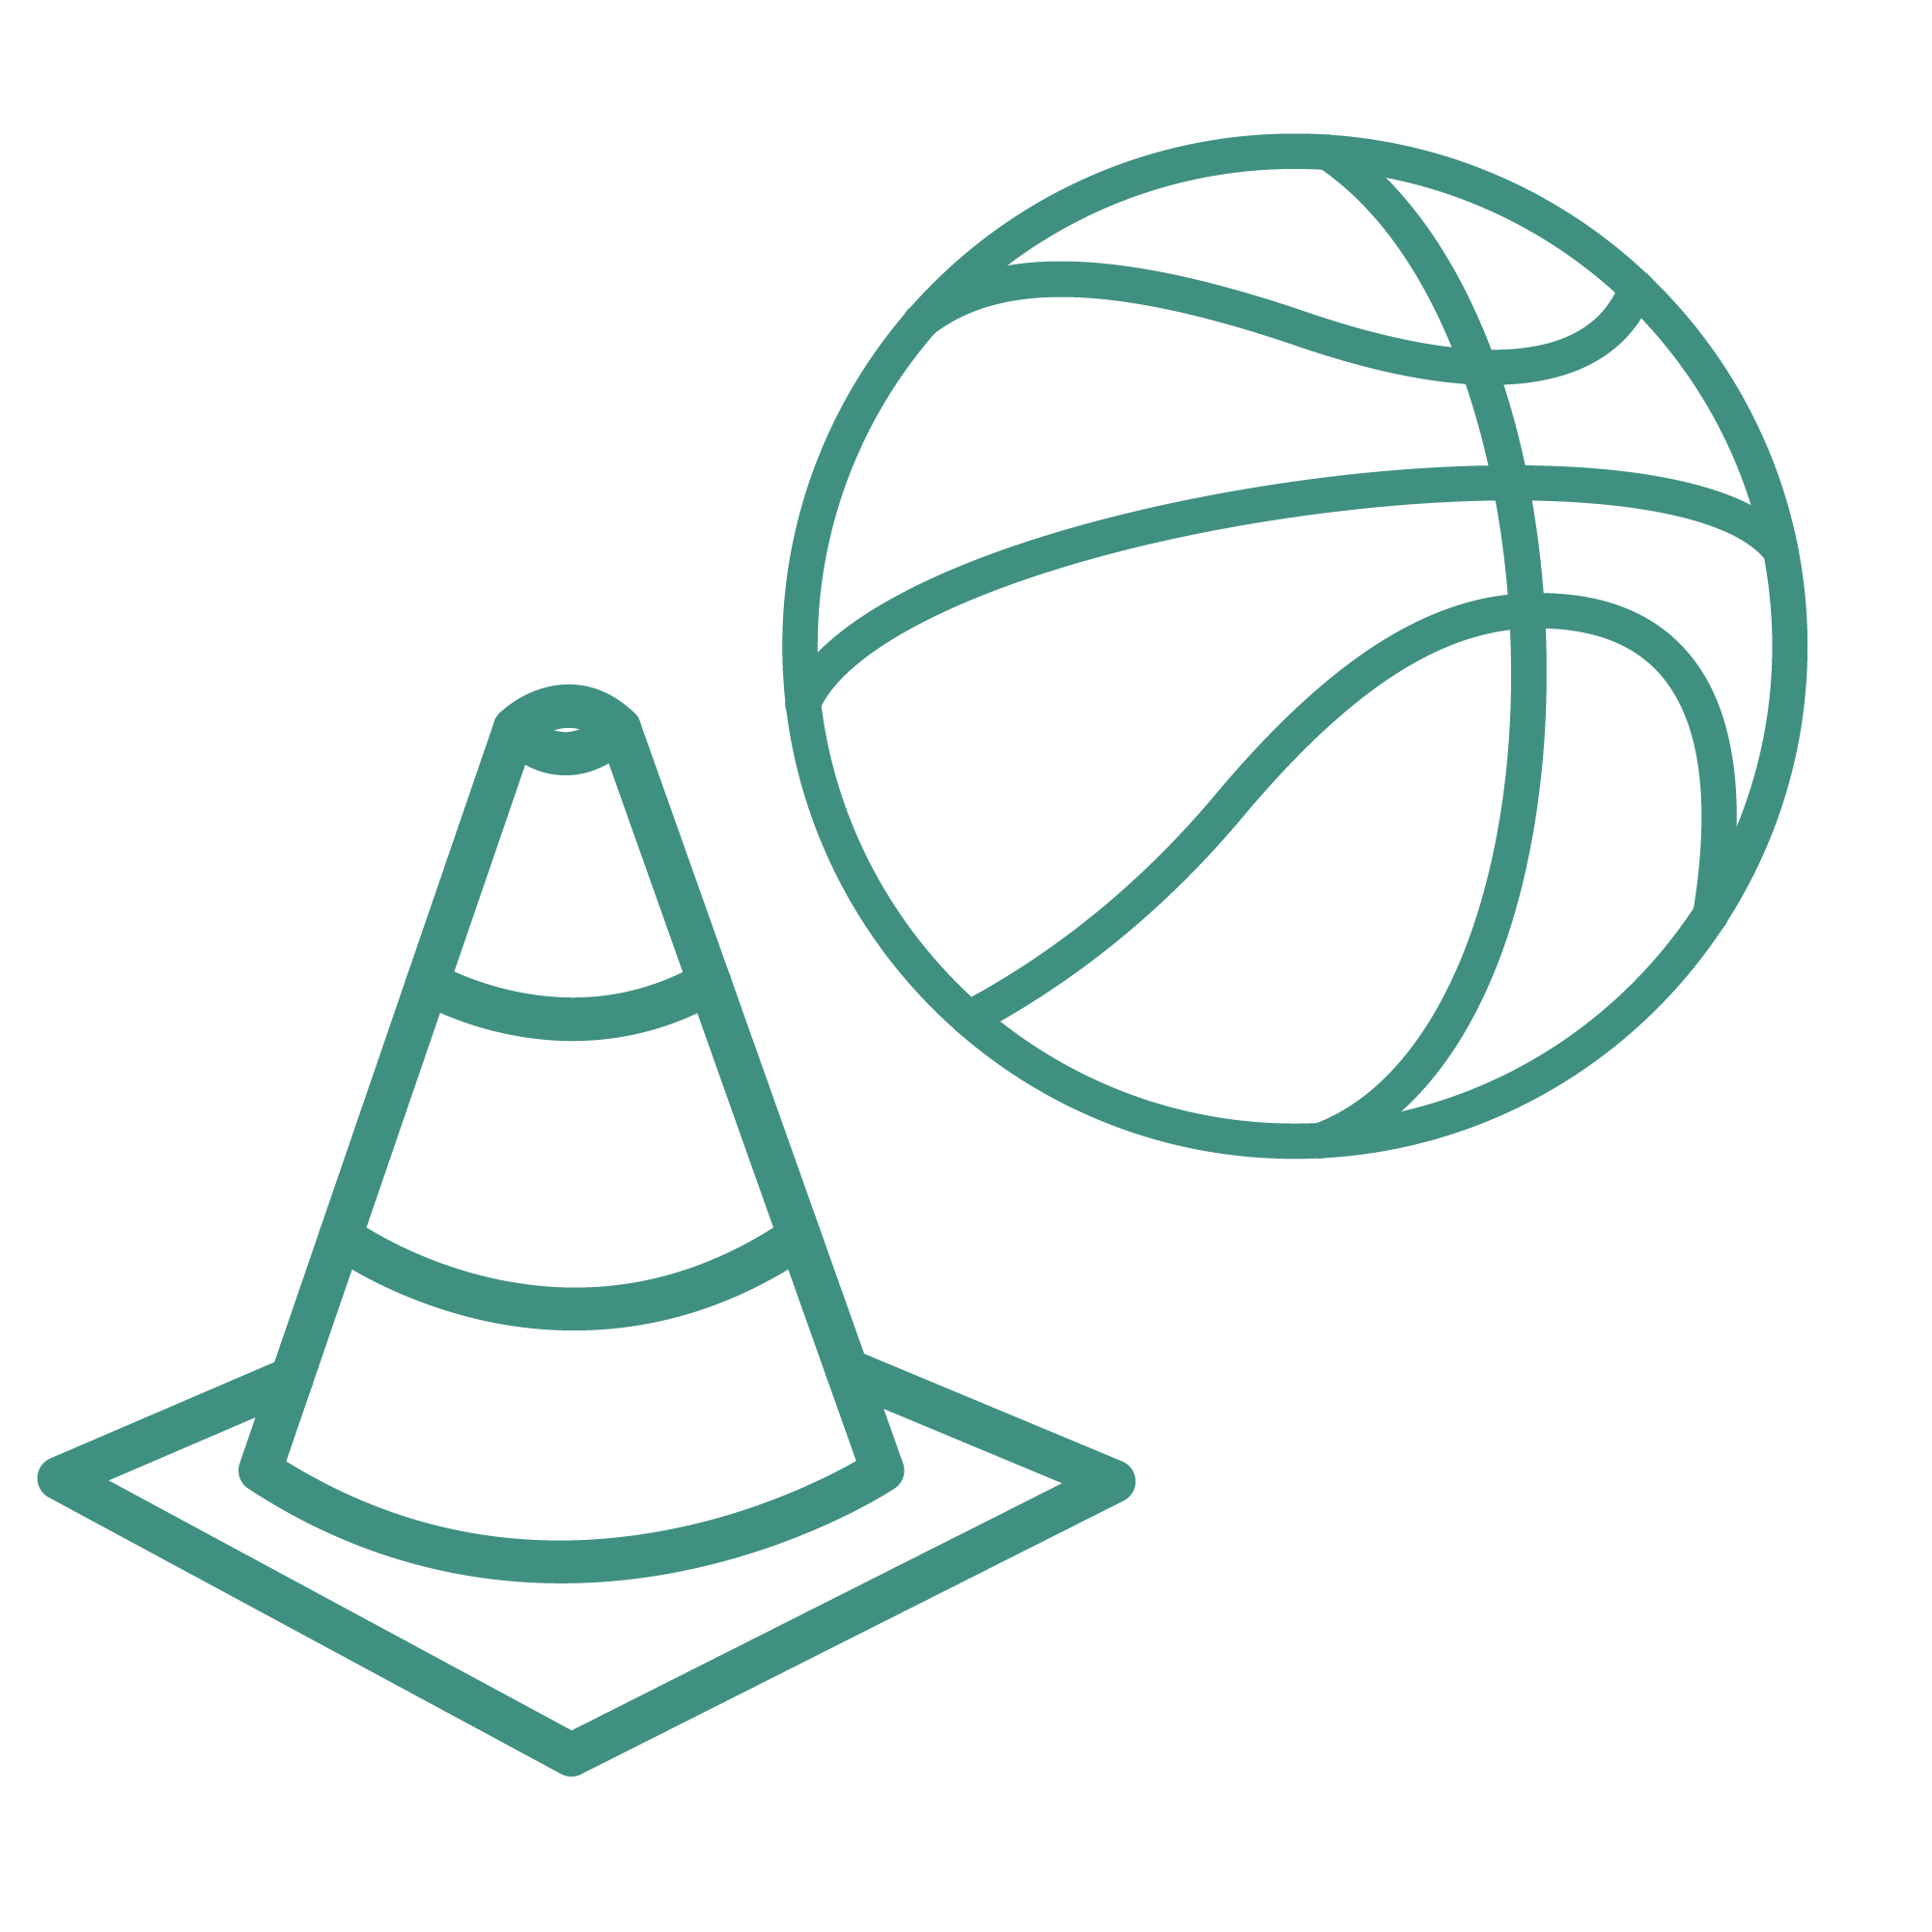 An icon depicting a basketball and a training cone